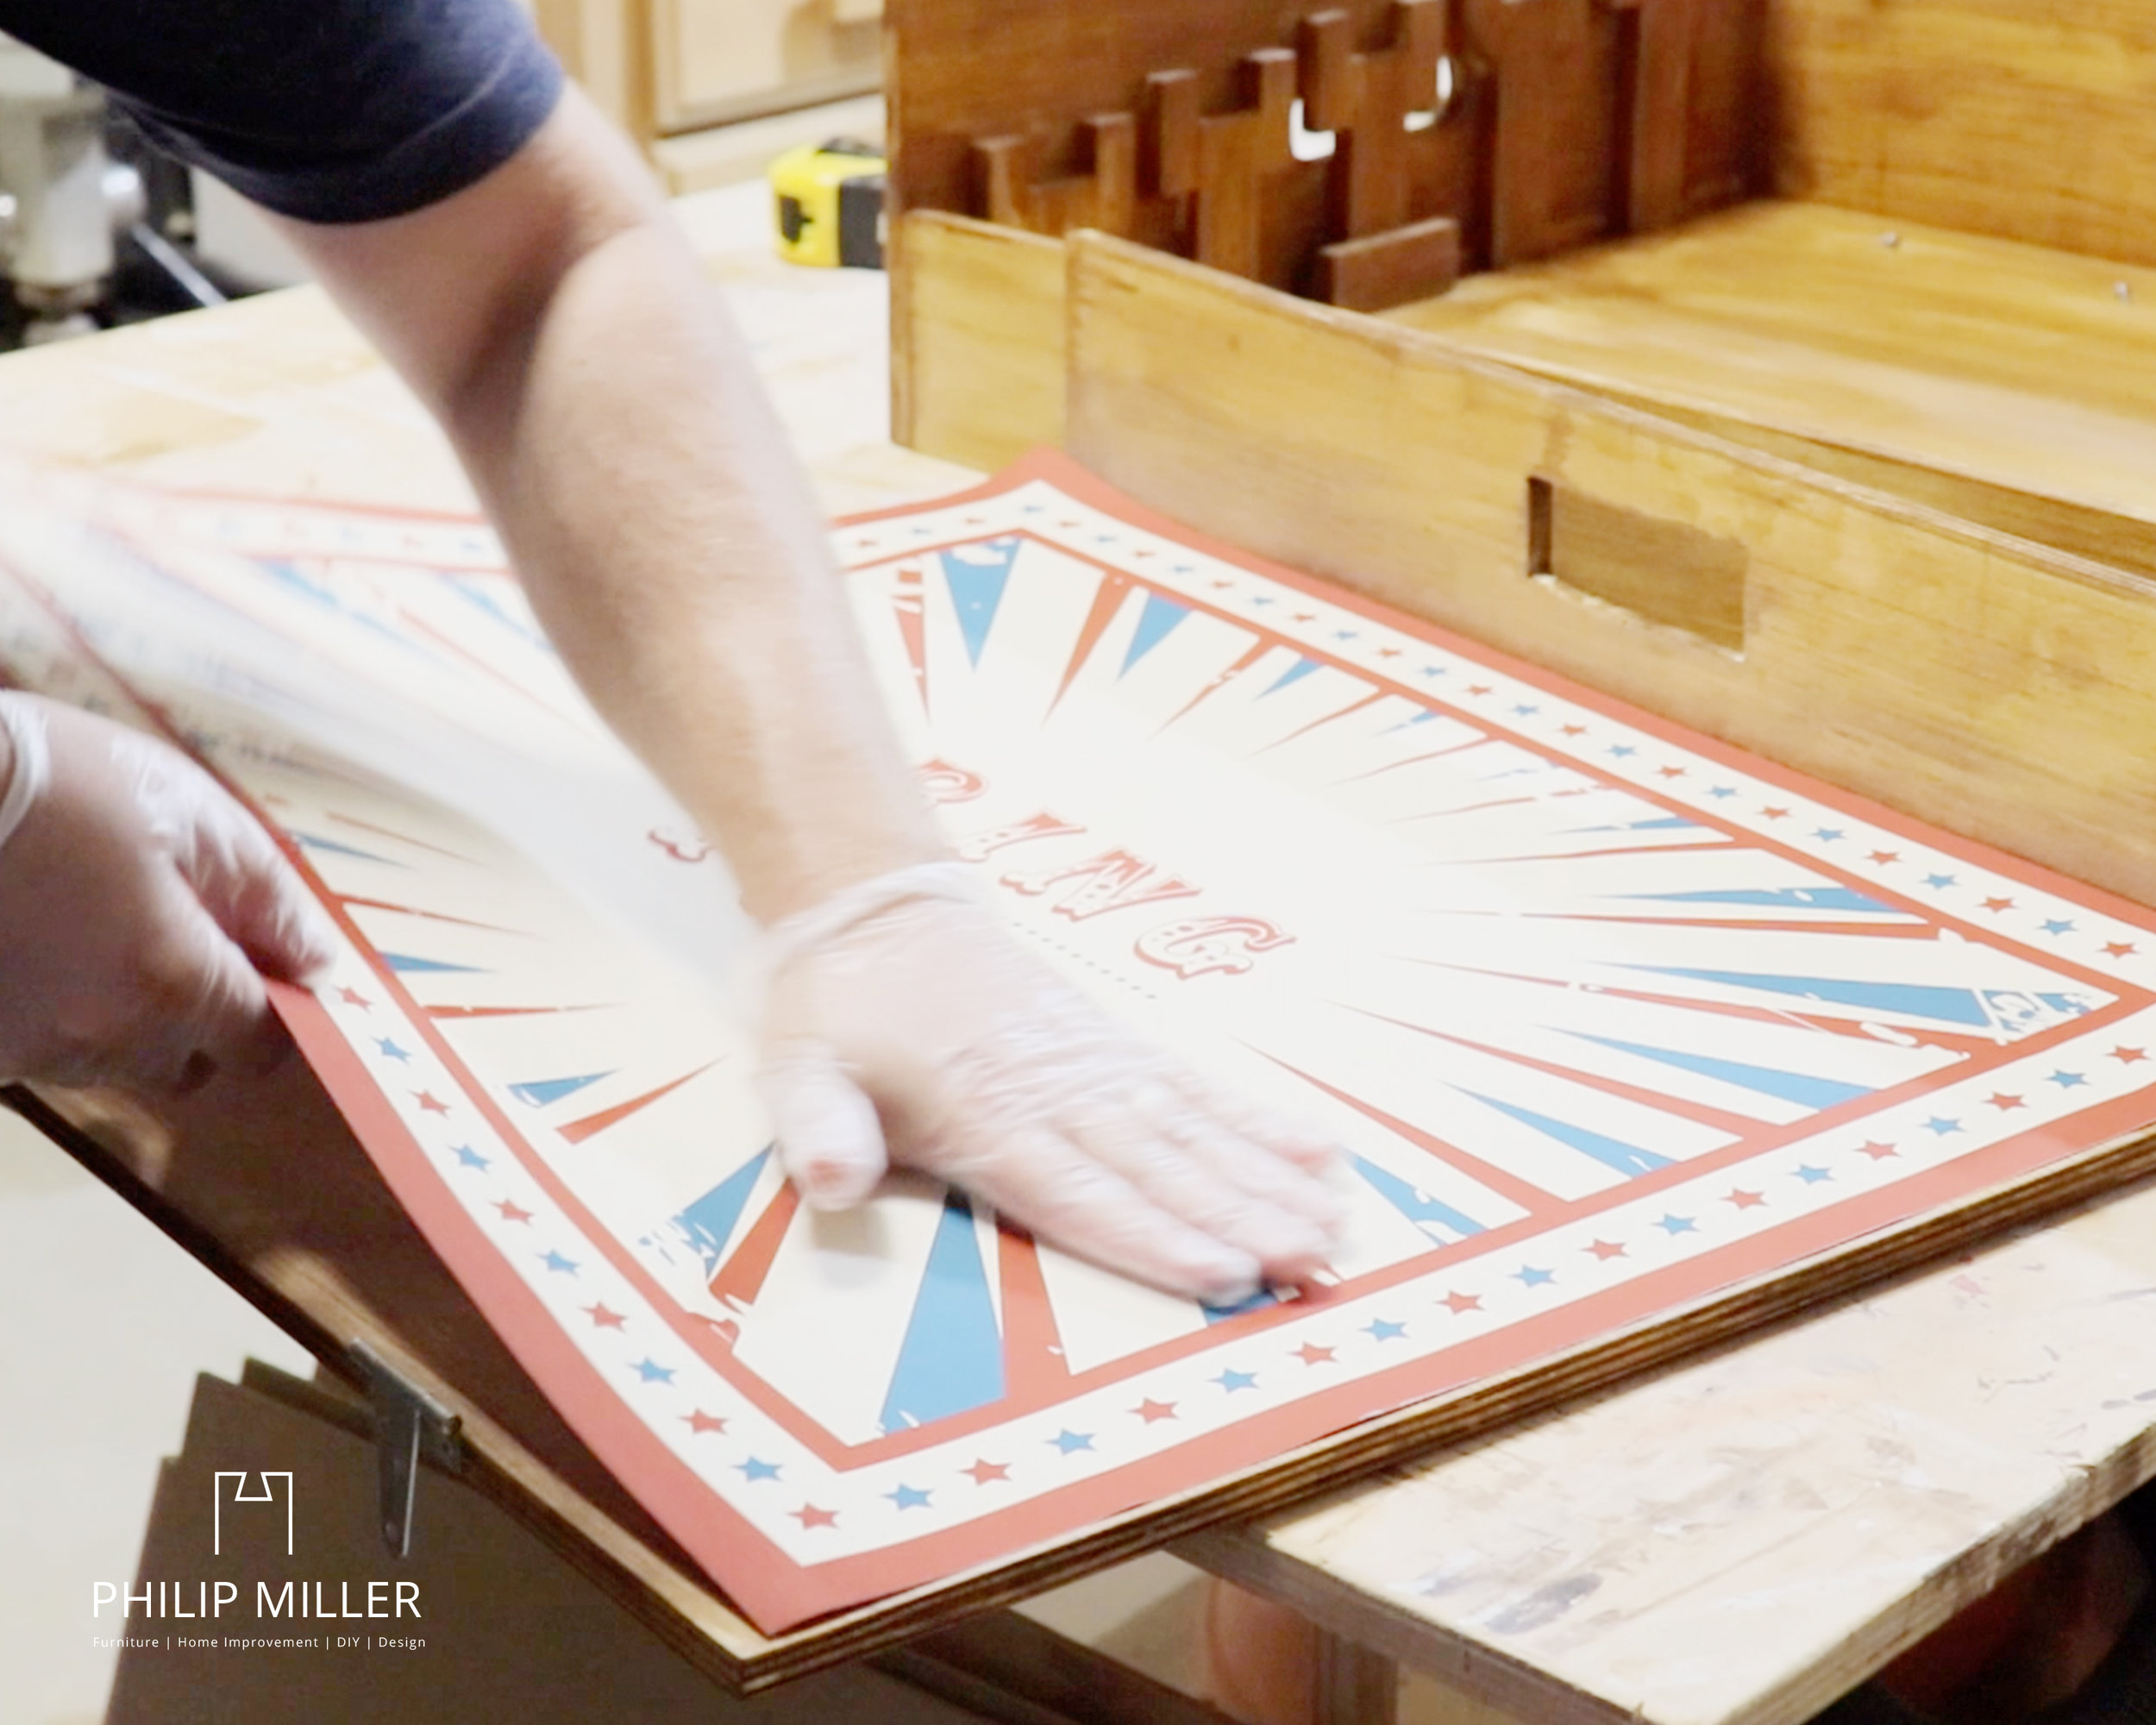 applying a ring toss graphic to wood in a work shop